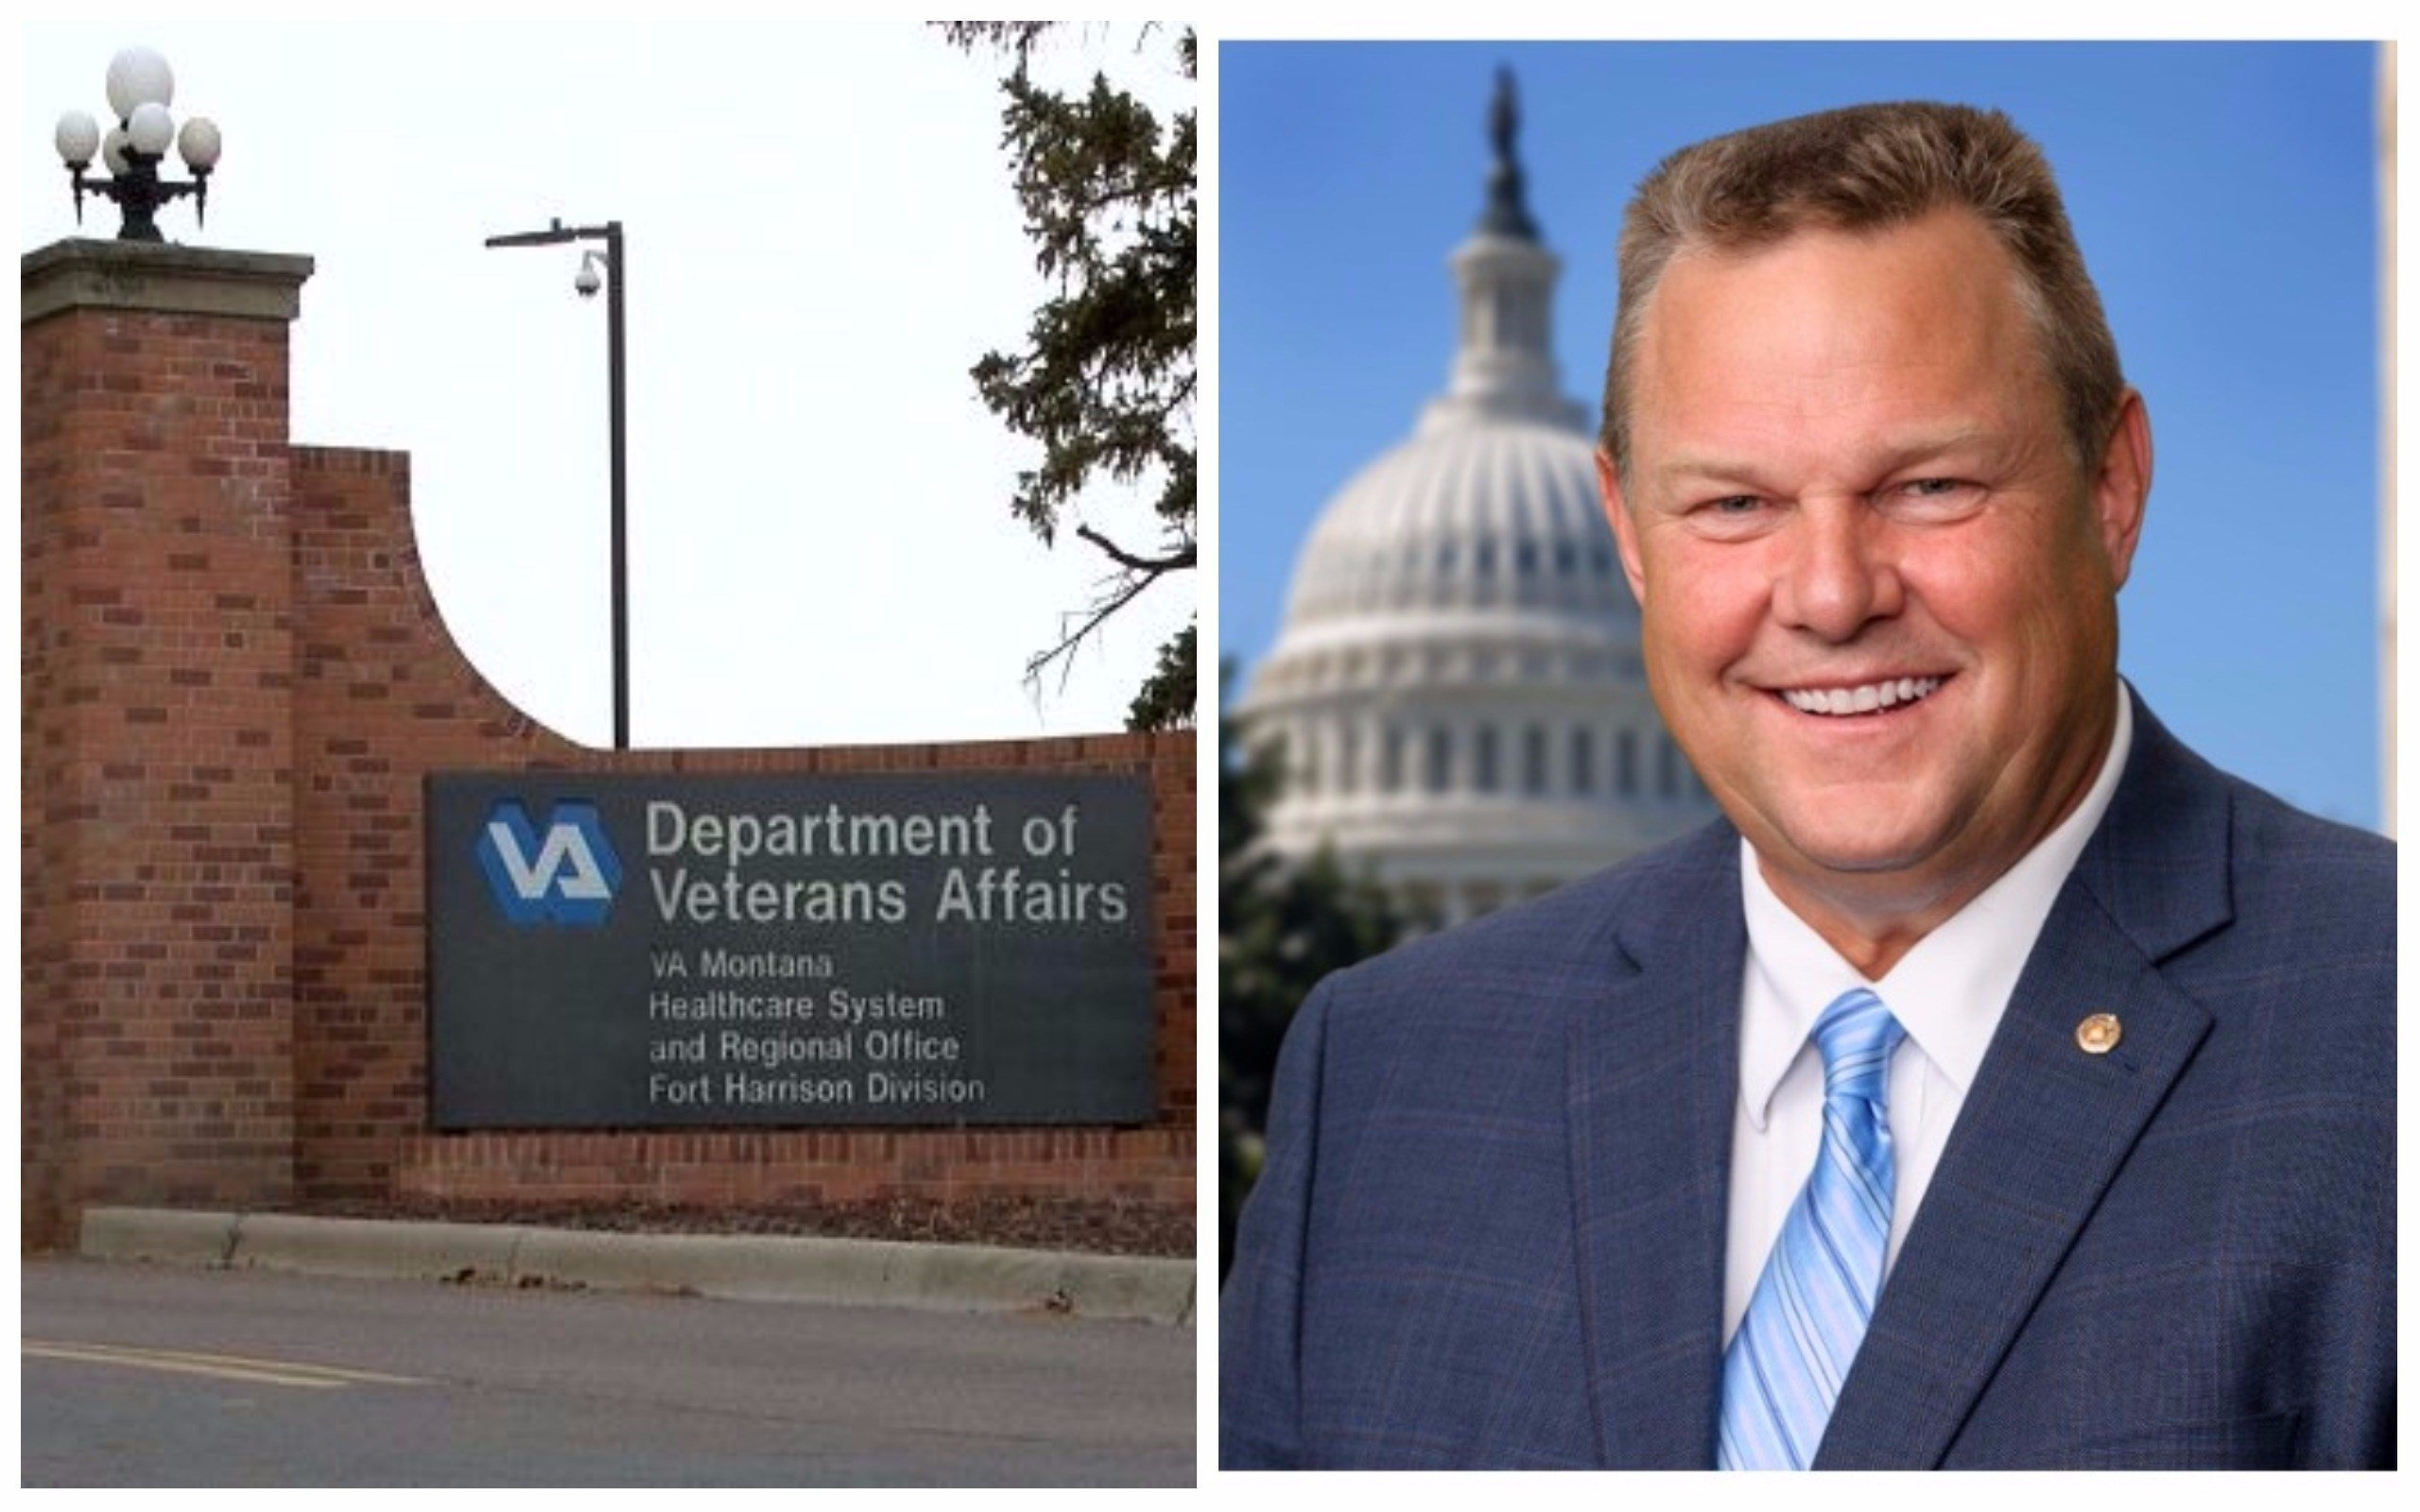 Montana sanders county dixon - Veterans Who Appeal Their Claims For Disability Benefits With The Va Should Now See A Faster Response After The Measure Passed Unanimously